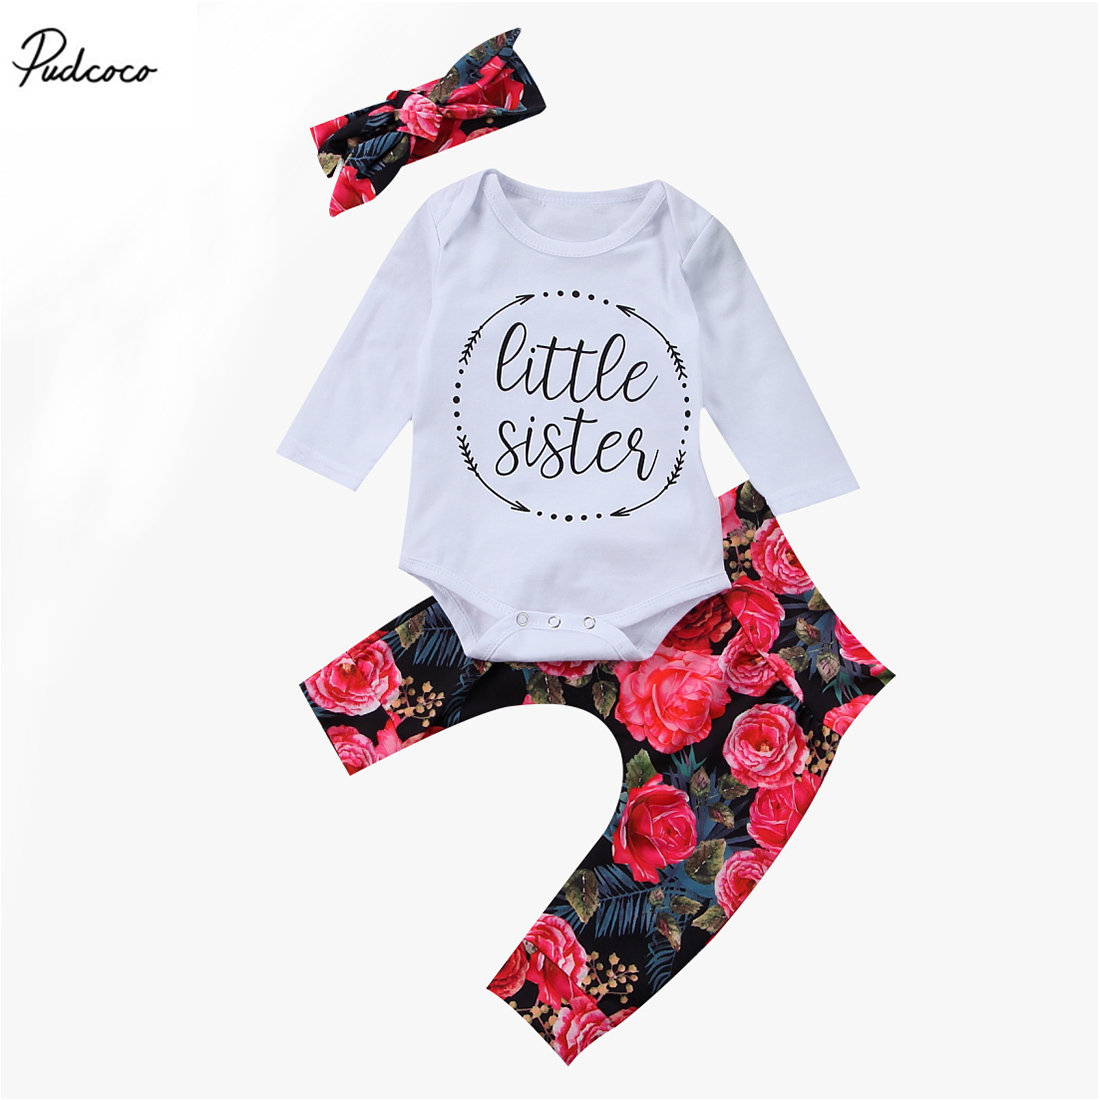 2017 New Cotton Newborn Baby Girls Little Sister Long Sleeve Tops Romper Flower Pants 3Pcs Outfits Set Clothes 0-18M newborn infant baby girl little sister romper pants headband outfits set clothes children infant girls sister clothing set 2pcs